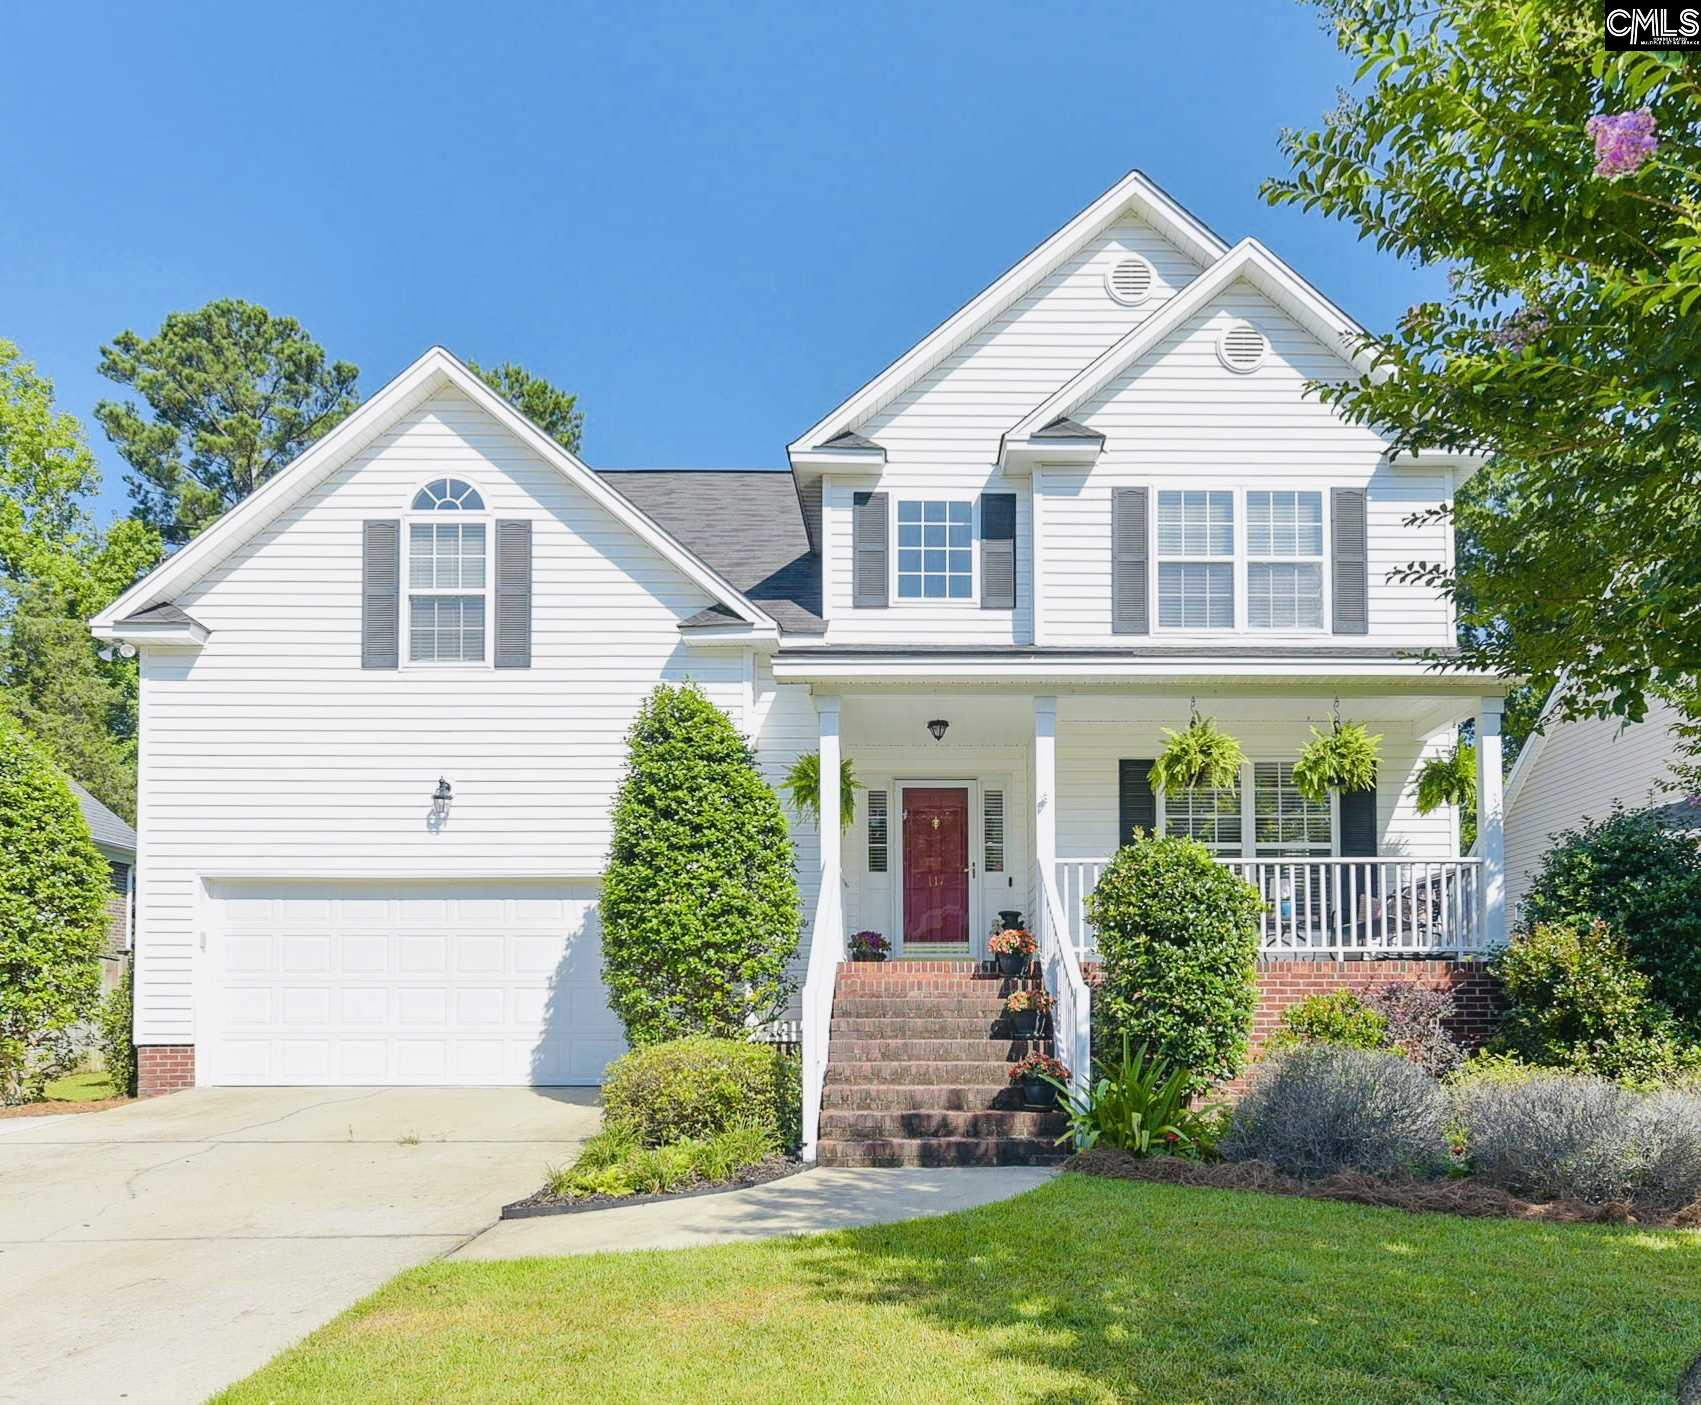 117 Caedmons Creek Irmo, SC 29063